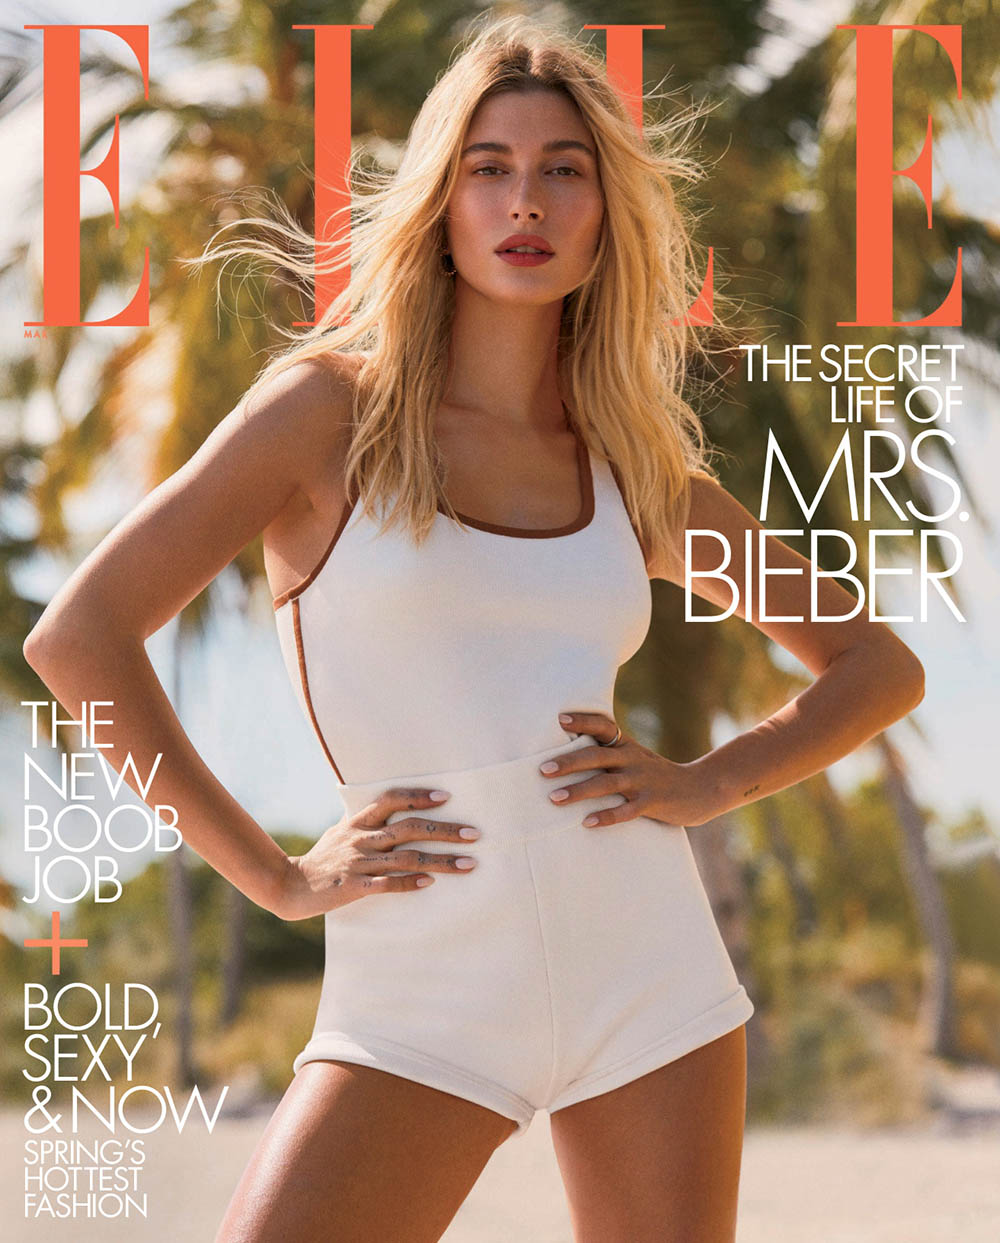 Hailey Baldwin covers Elle US March 2020 by Zoey Grossman